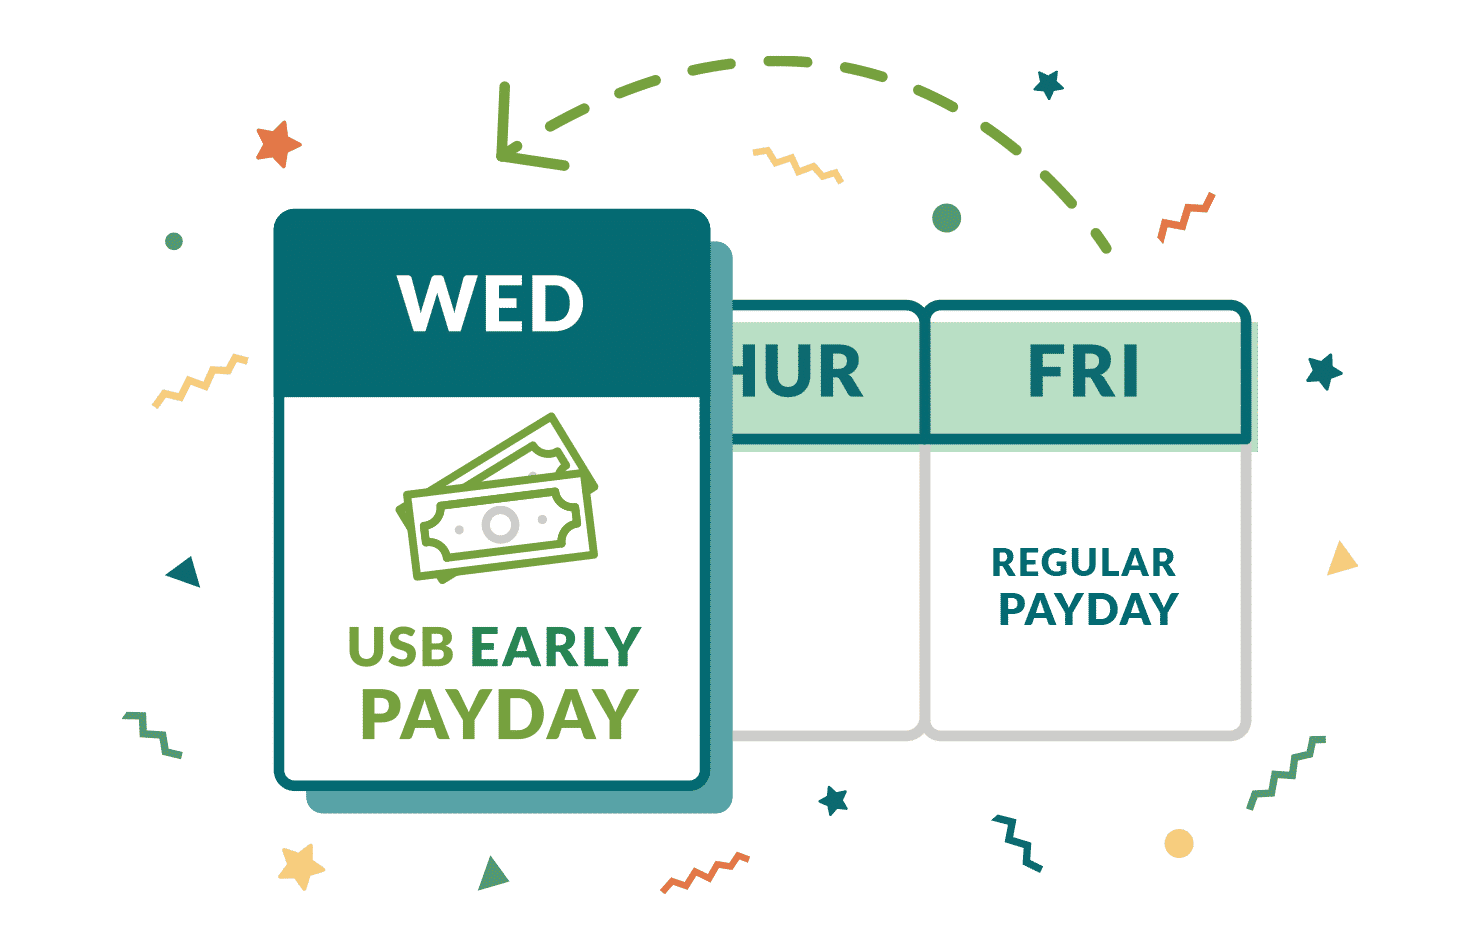 payday hero4 - USB Early Payday